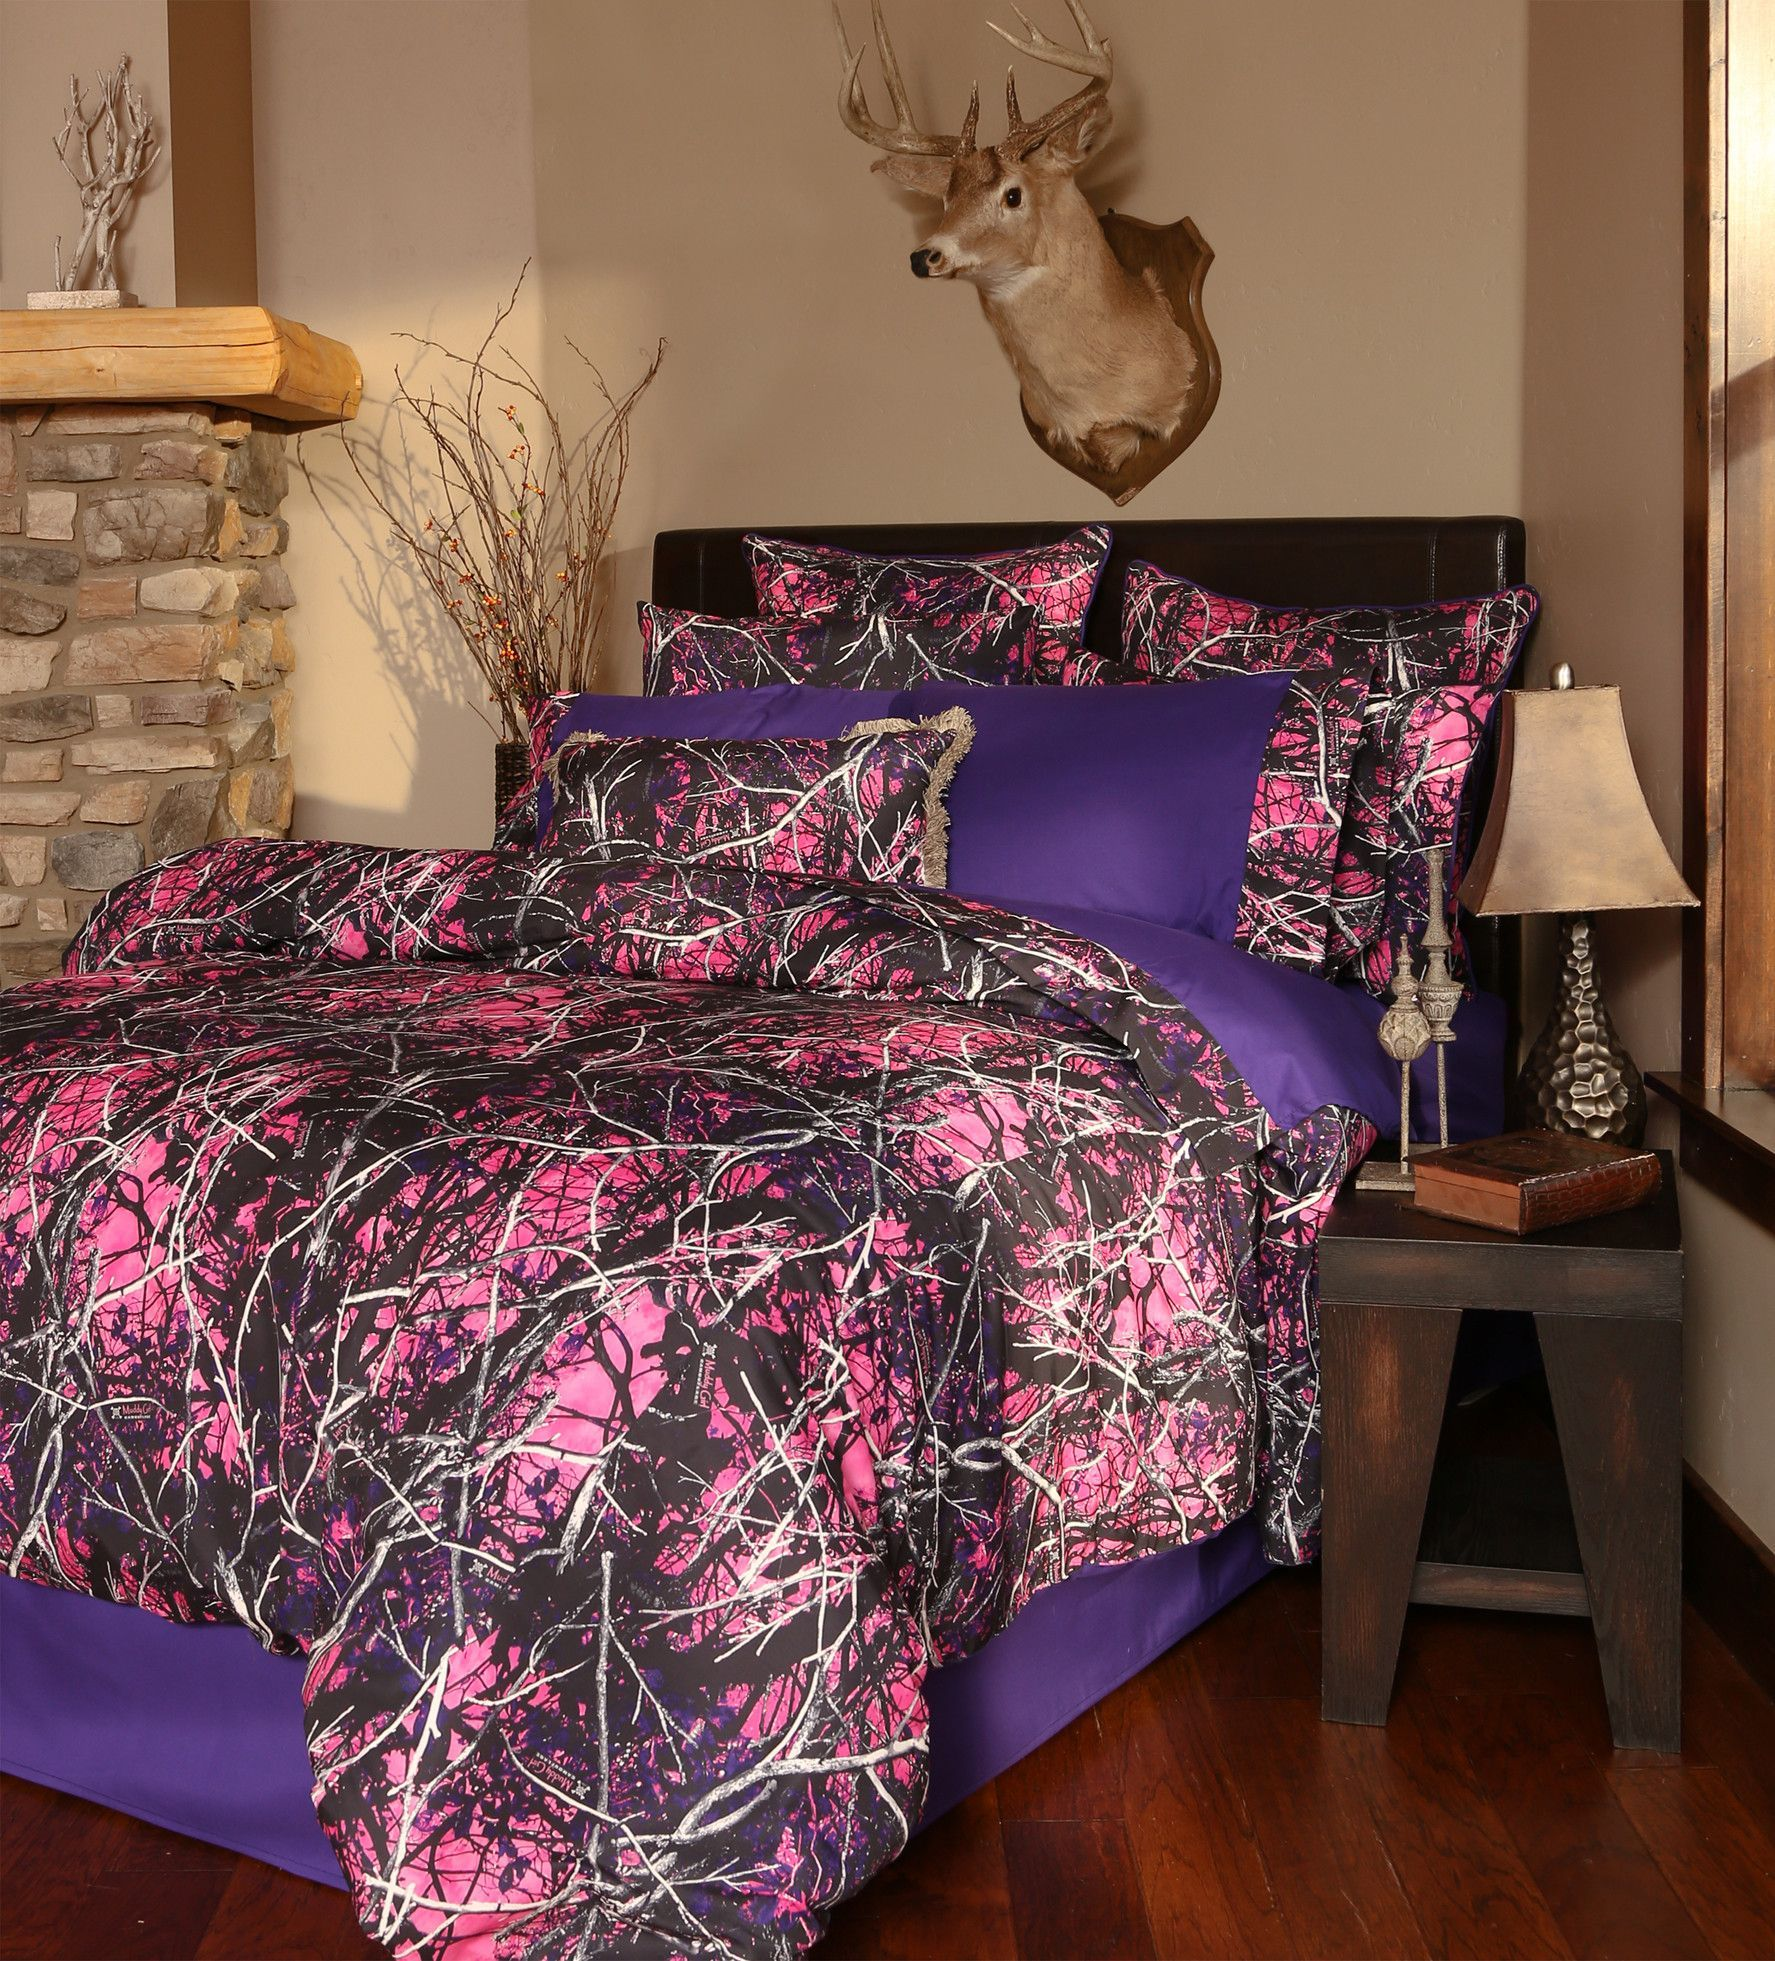 Muddy Girl Comforter Set Homes Pinterest Lit Draps De Lit And